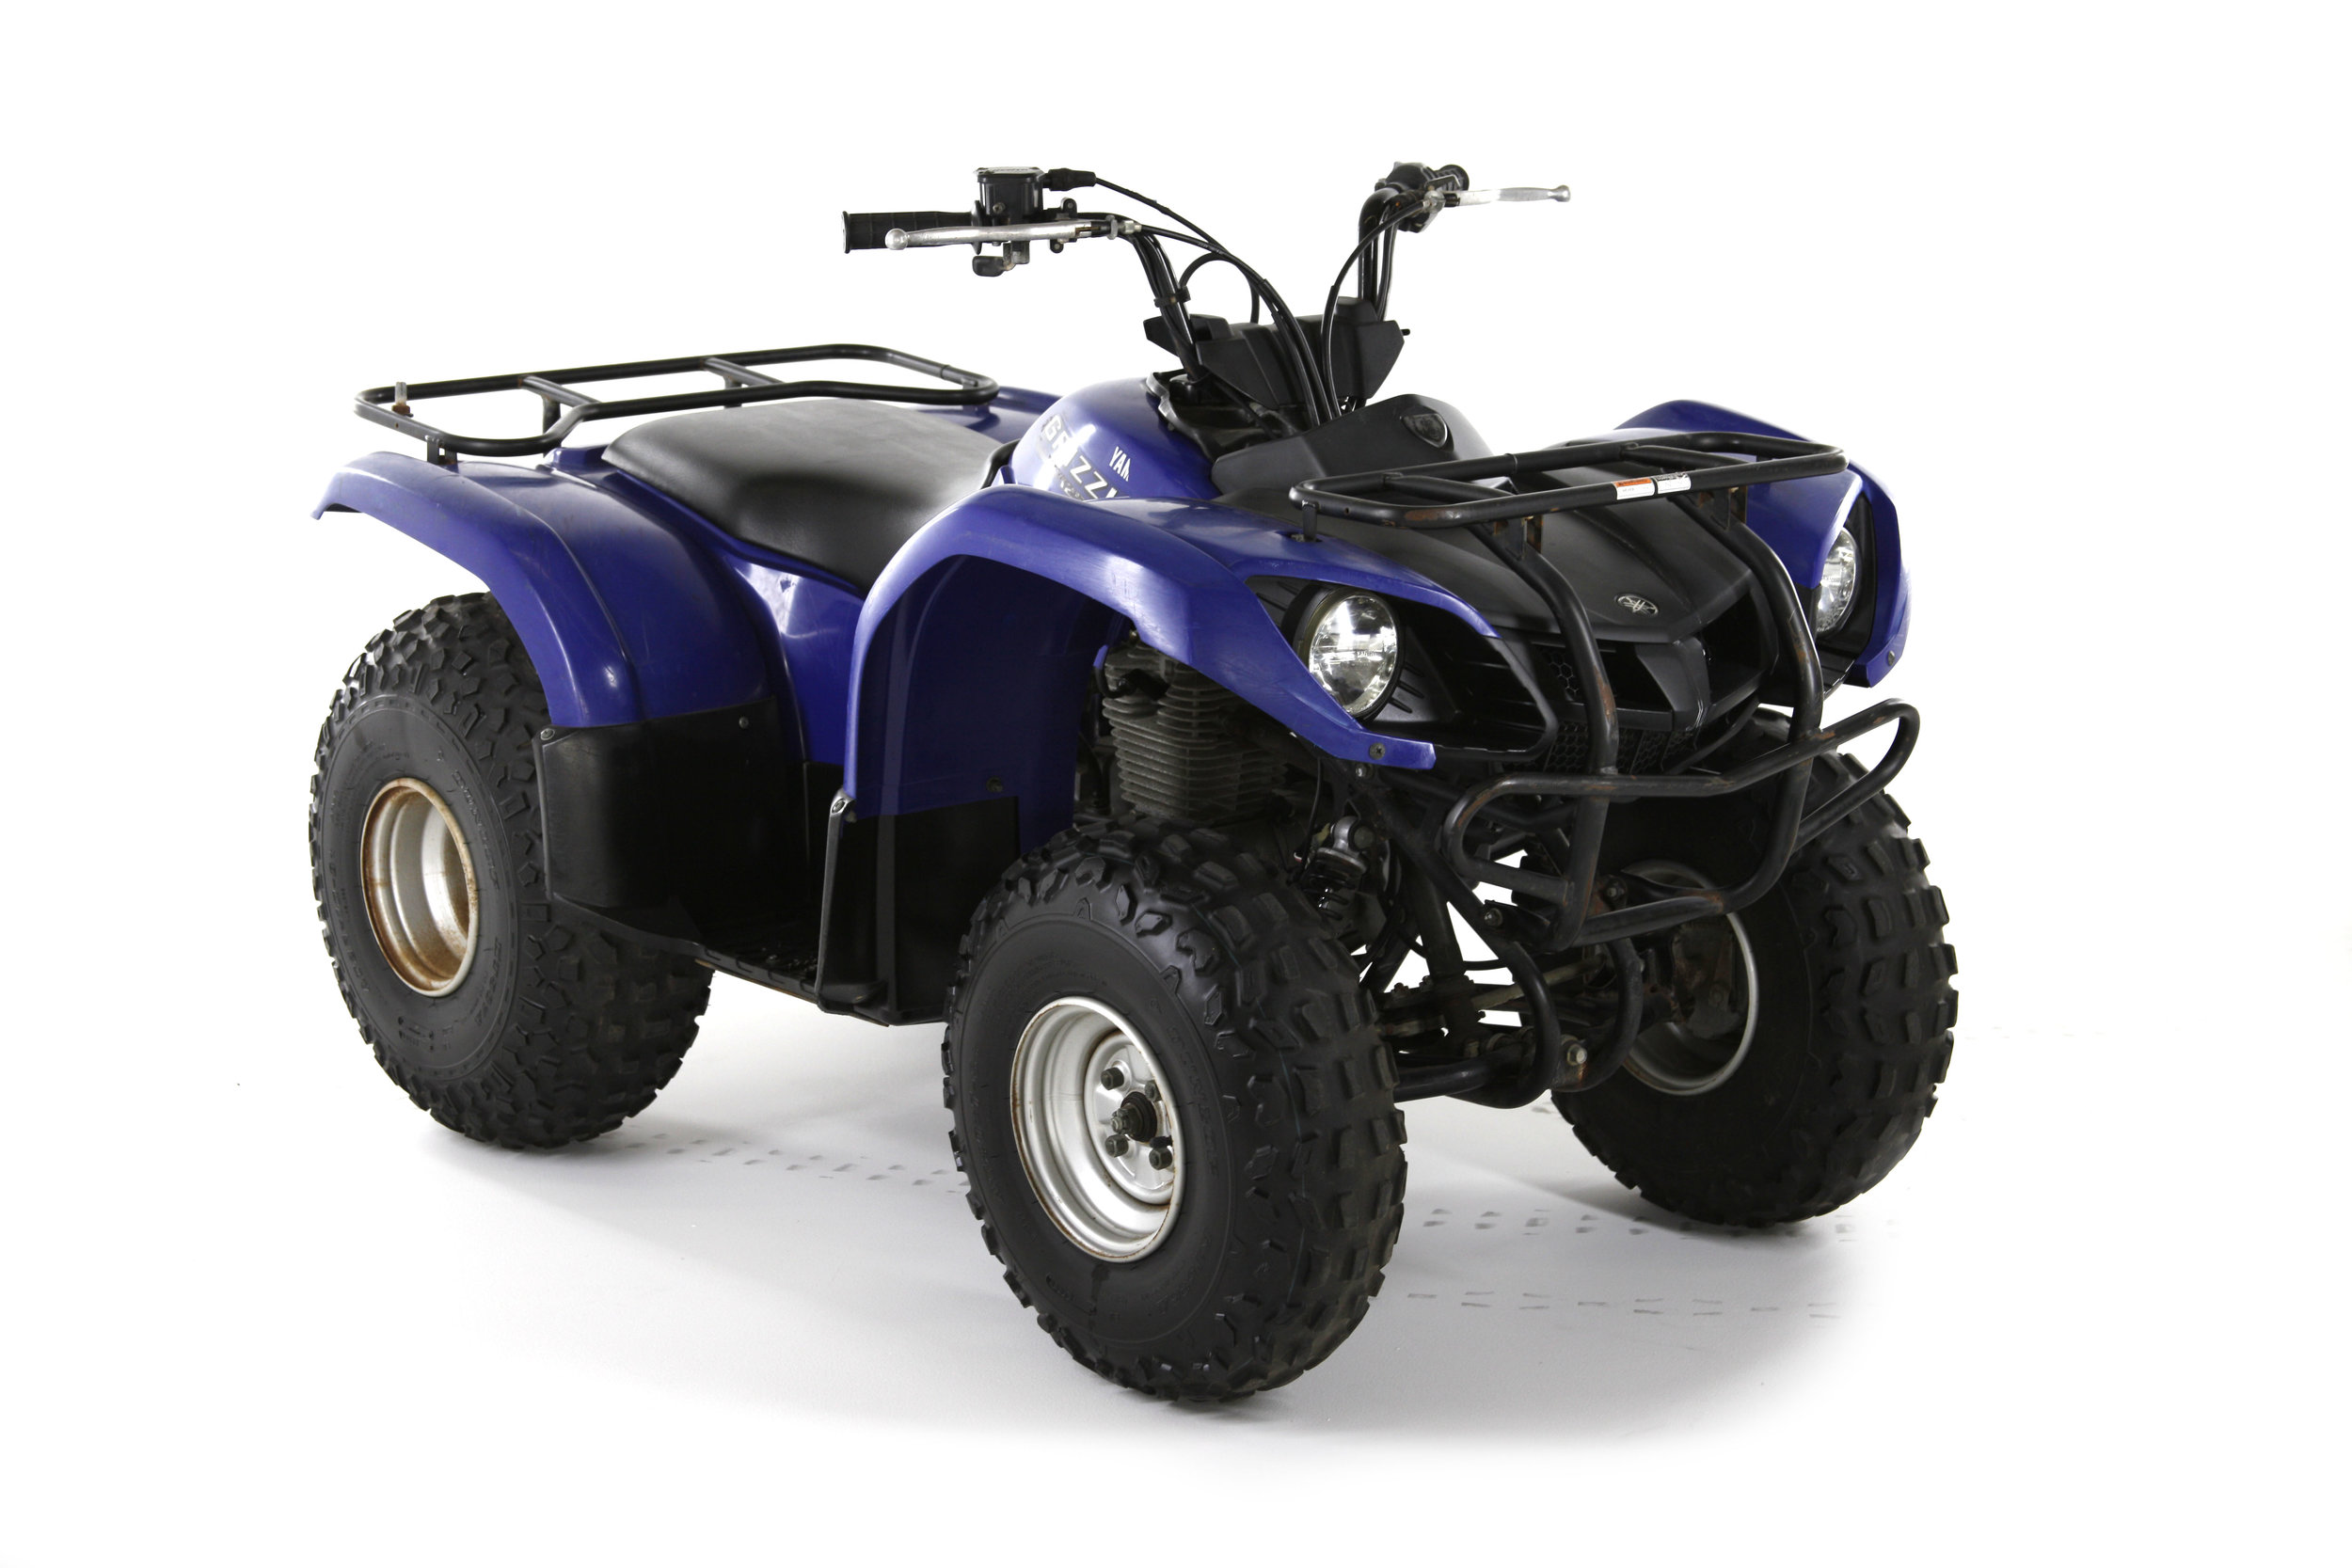 2005 Yamaha Grizzly